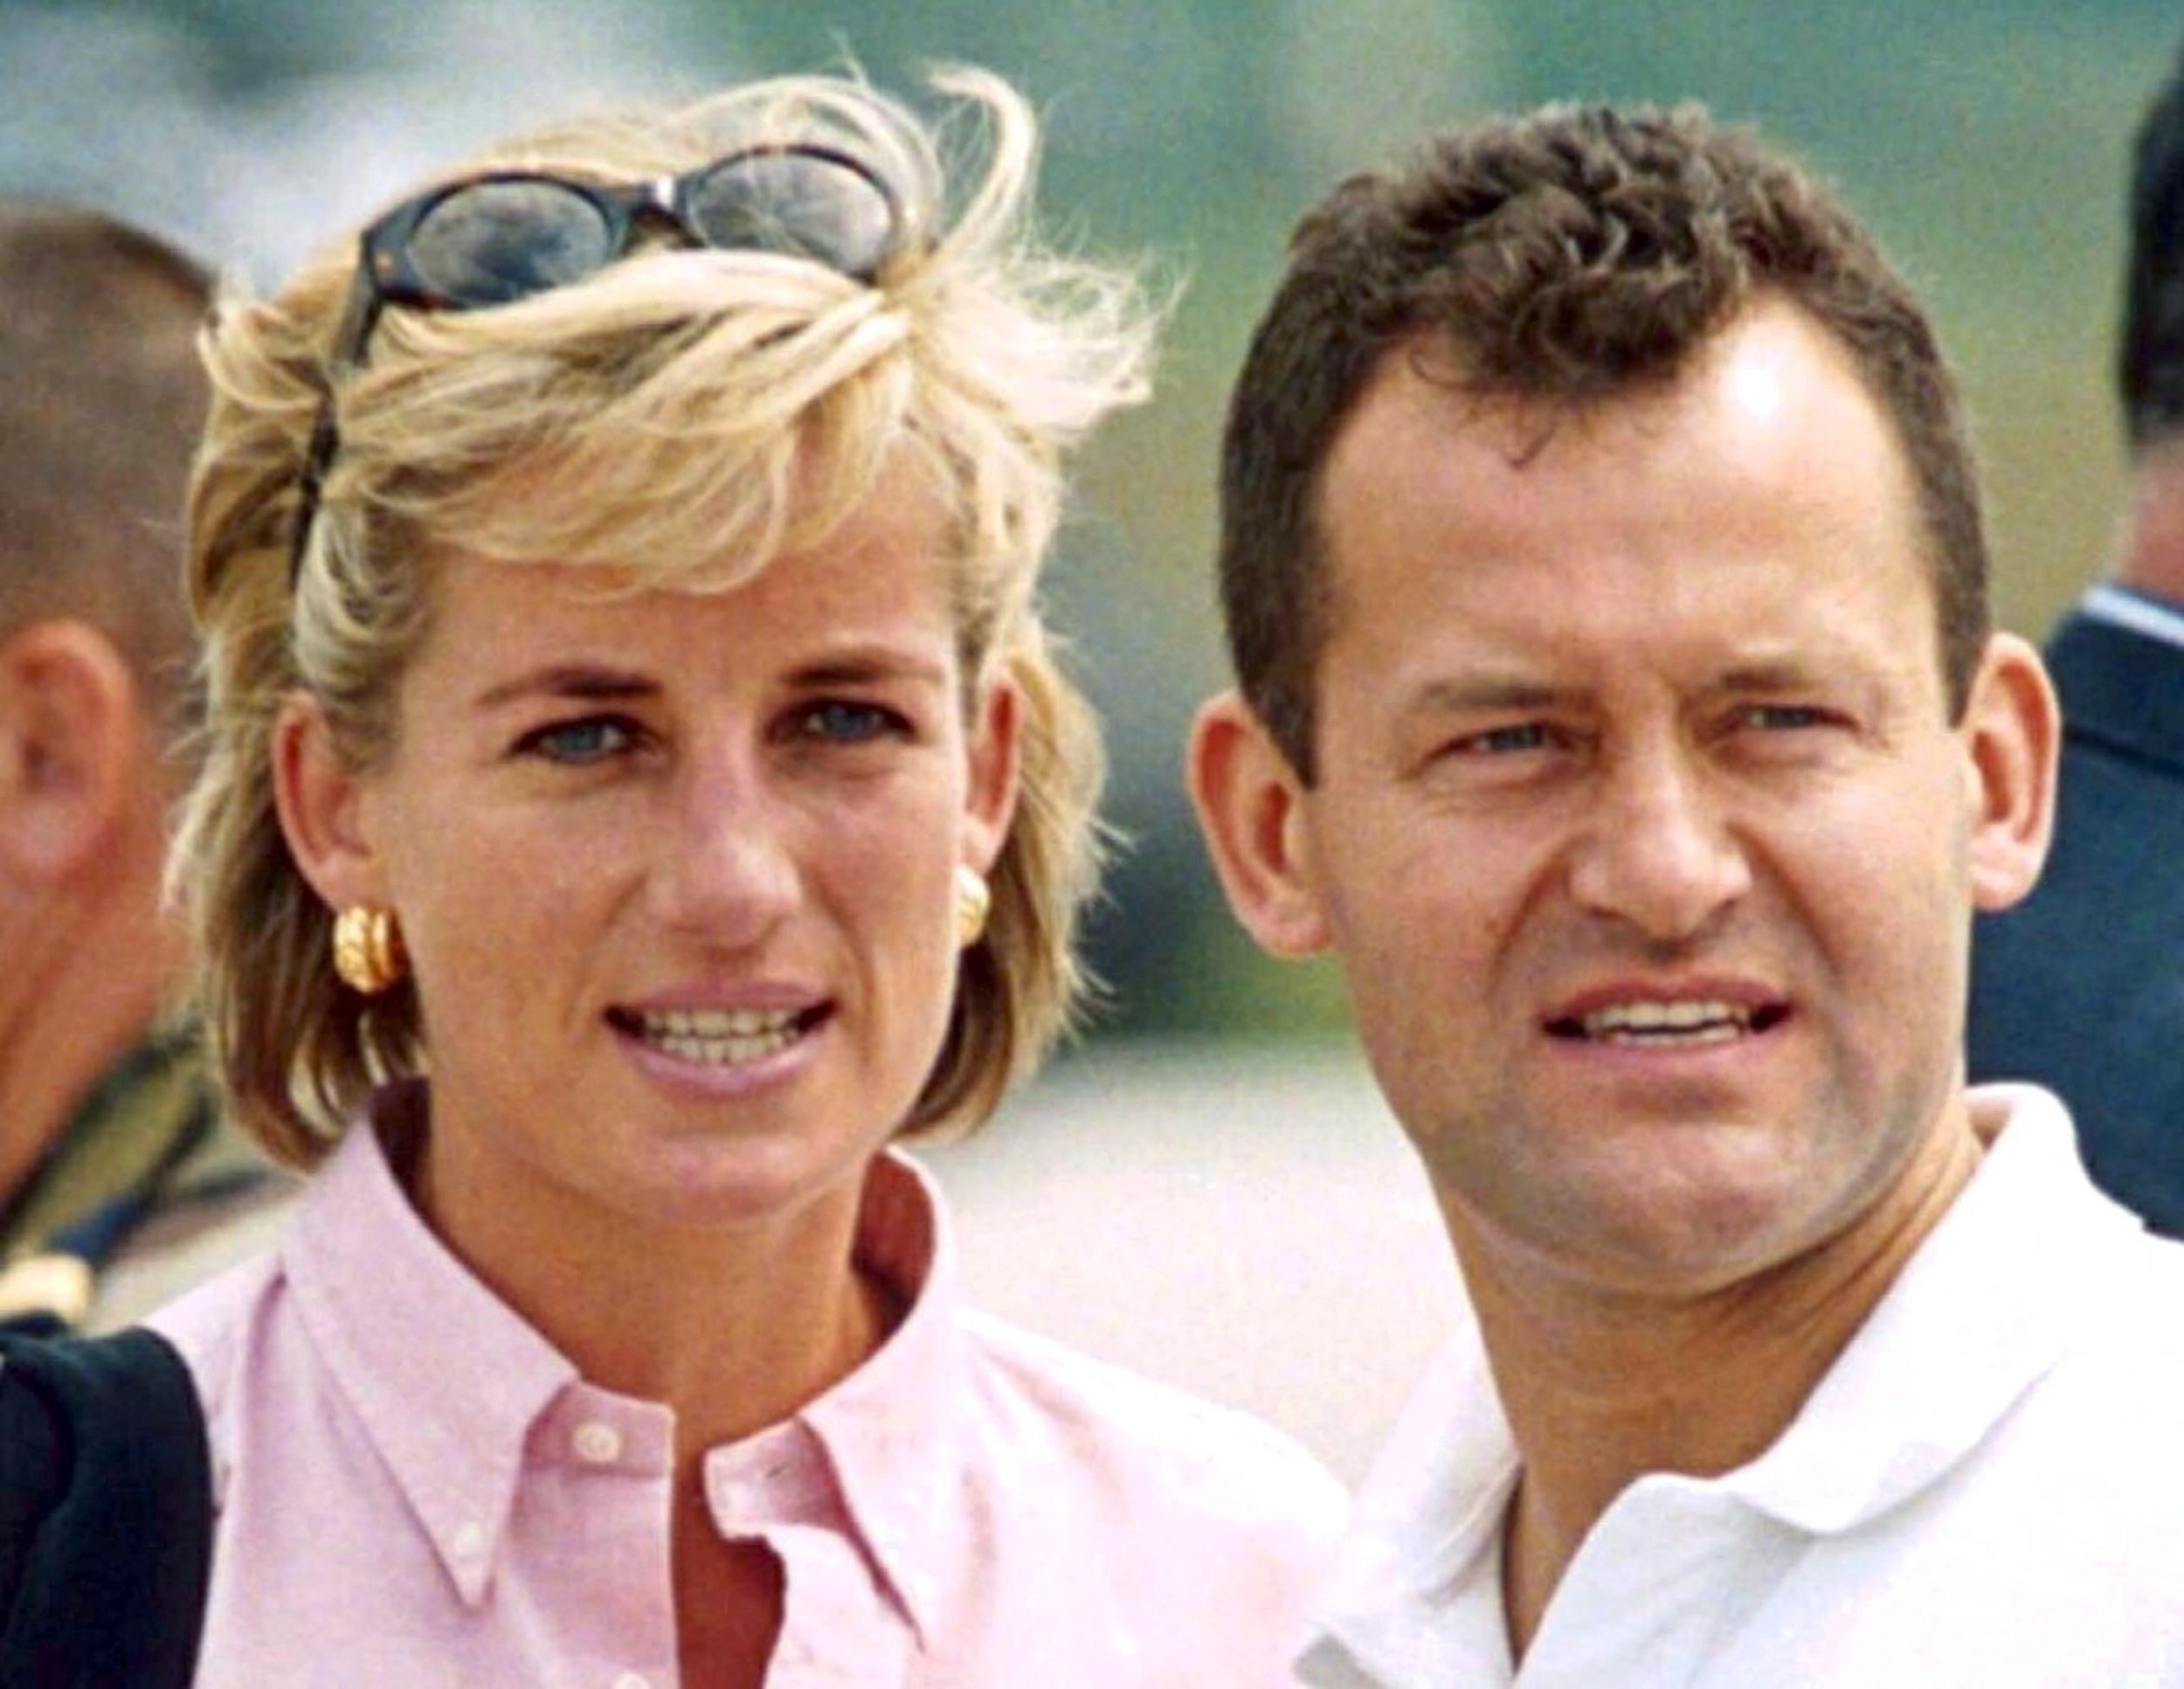 Mandatory Credit: Photo by Tim Rooke/REX/Shutterstock (277623es) PRINCESS DIANA WITH HER BUTLER PAUL BURRELL Princess Diana Promoting the Landmine Survivors Network, Bosnia - Aug 1997